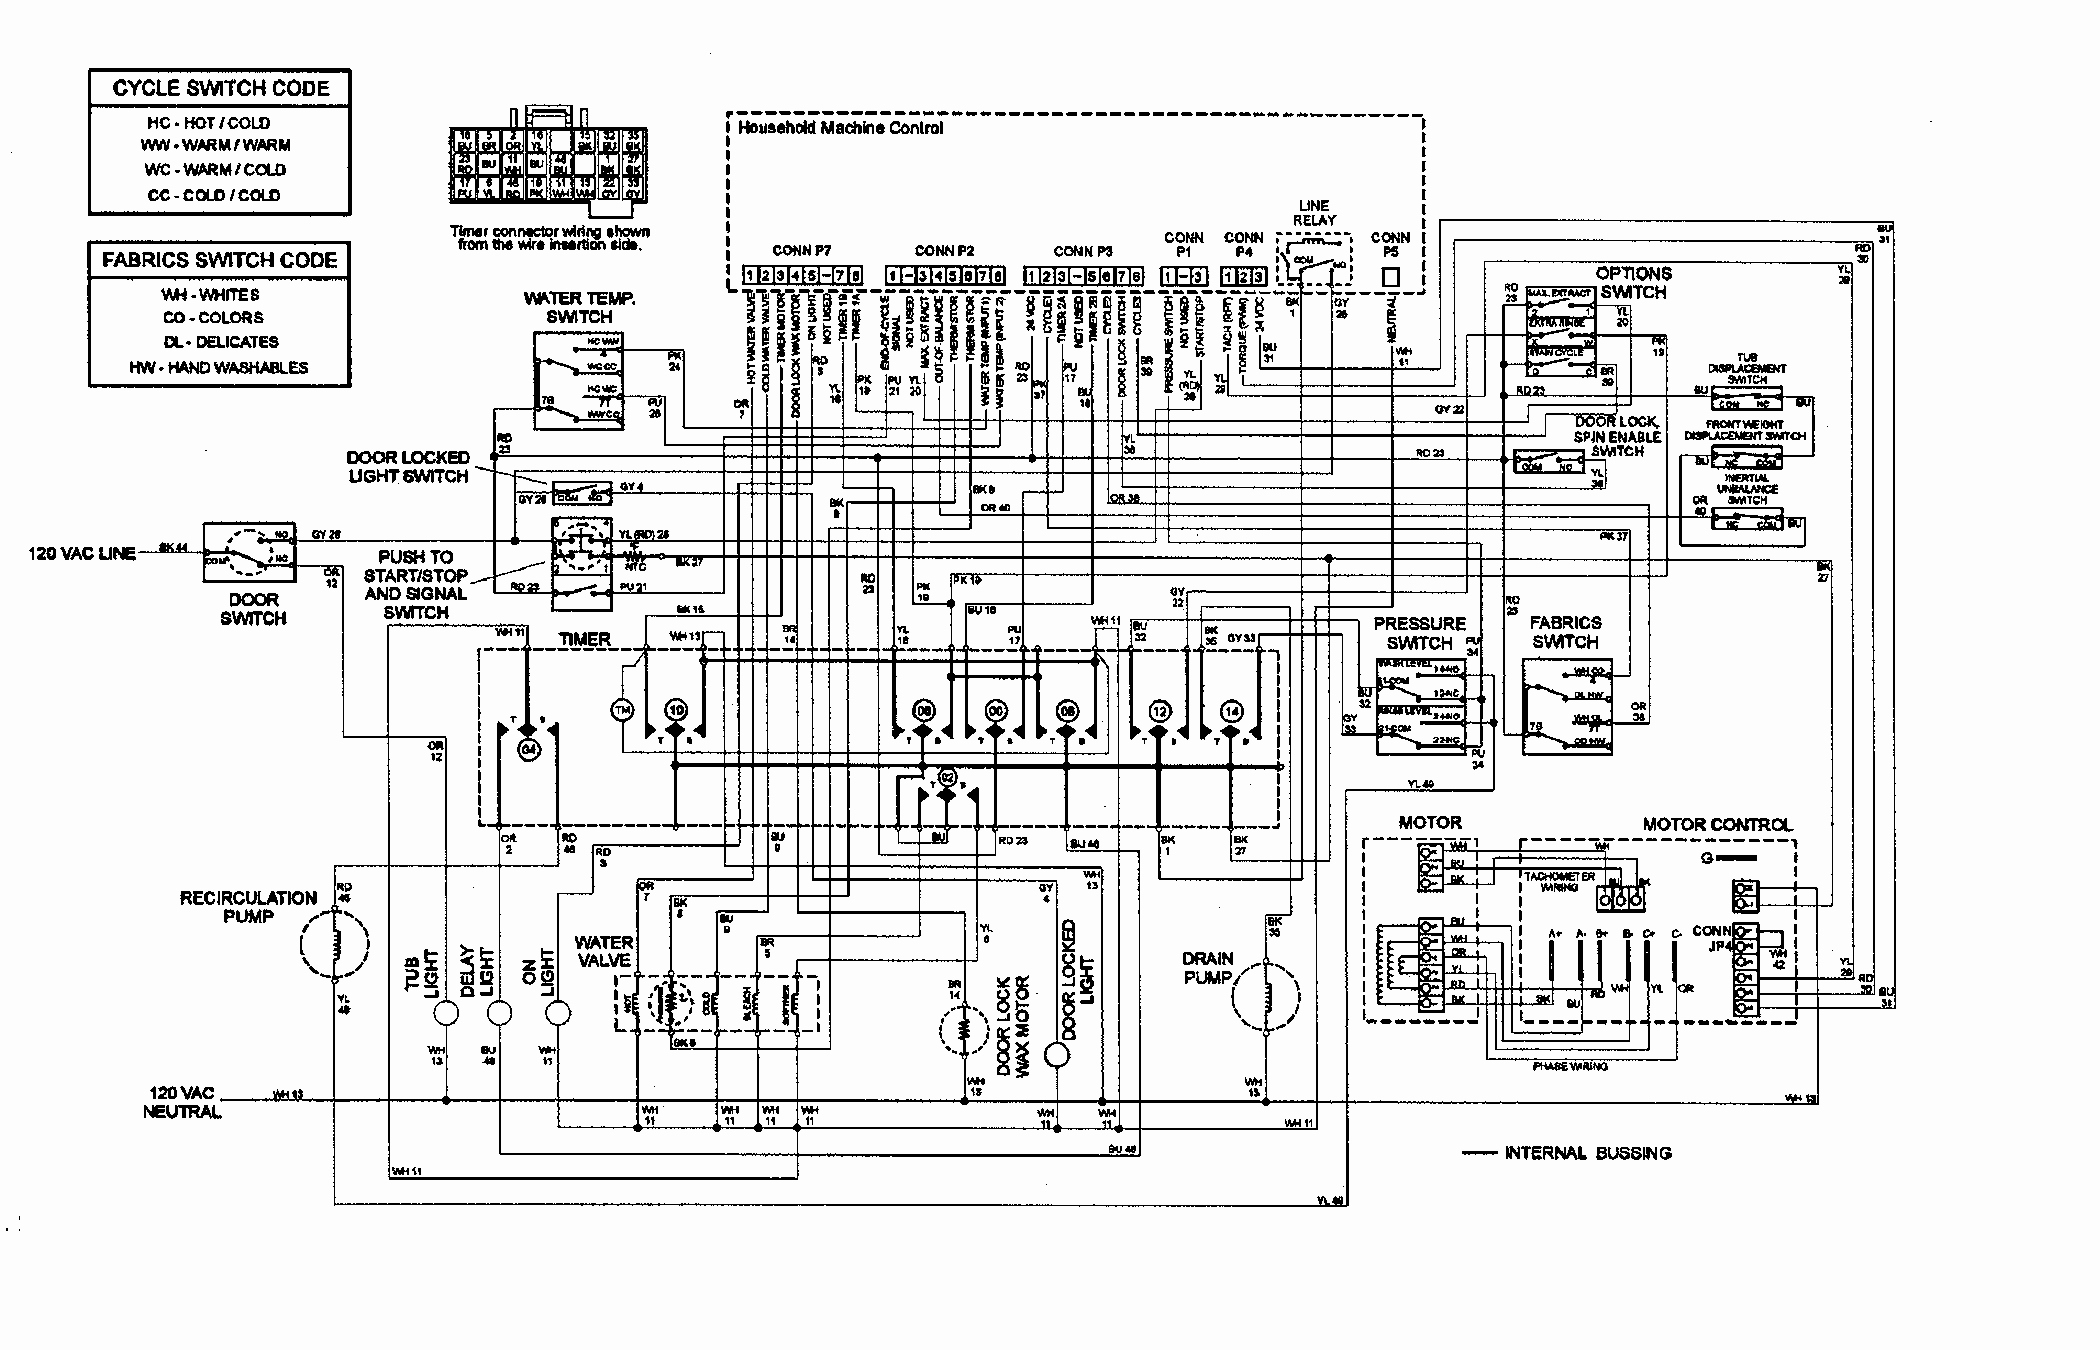 maytag centennial washer wiring diagram Download-Full Size of Wiring Diagram Maytag Centennial Dryer Wiring Diagram Best Maytag Model Mah5500aww 8-o